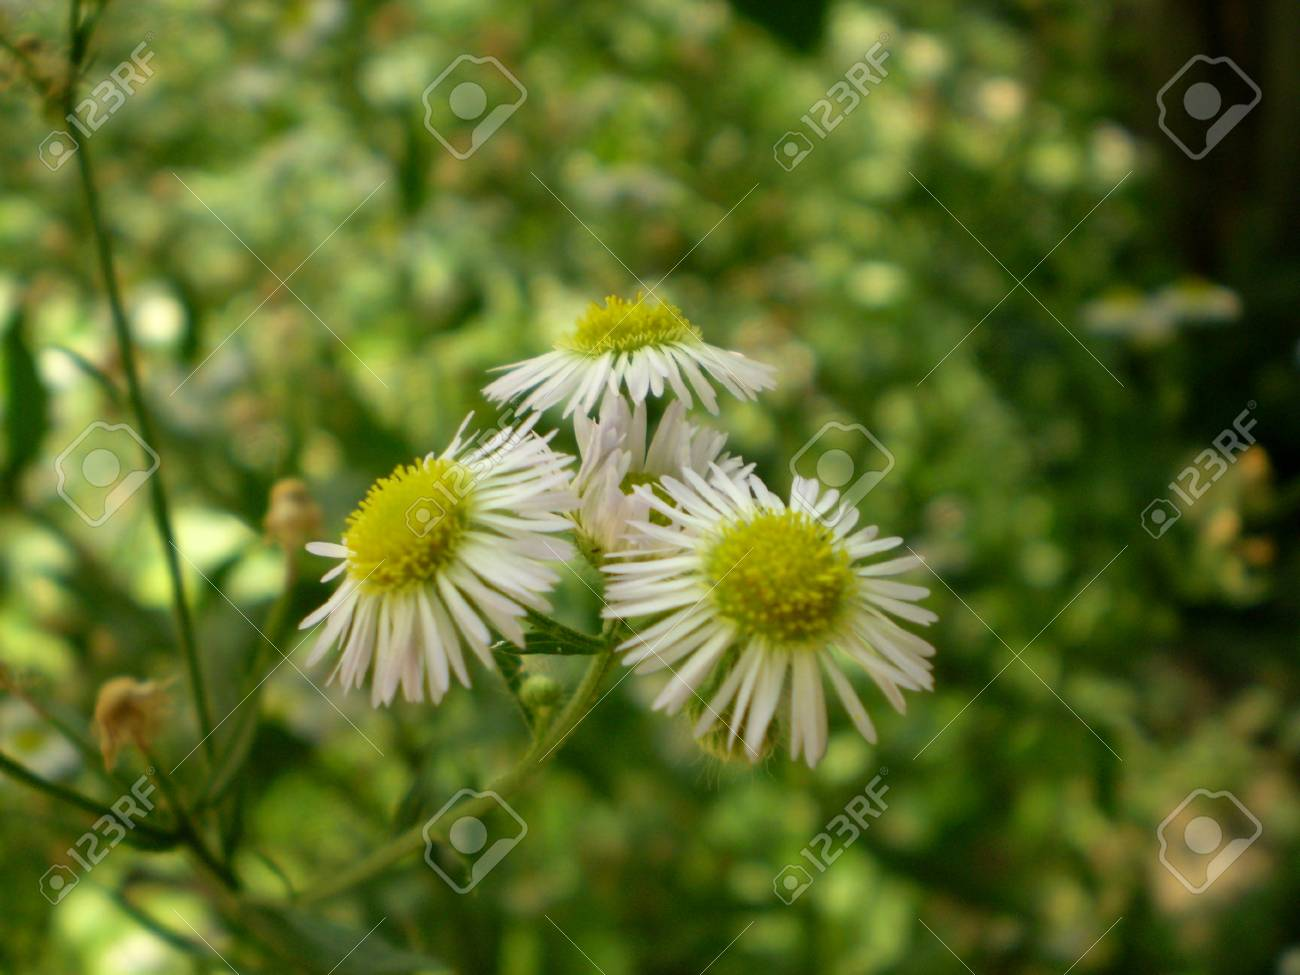 Photo Of Chamomile Flowers With Yellow Center And White Petals